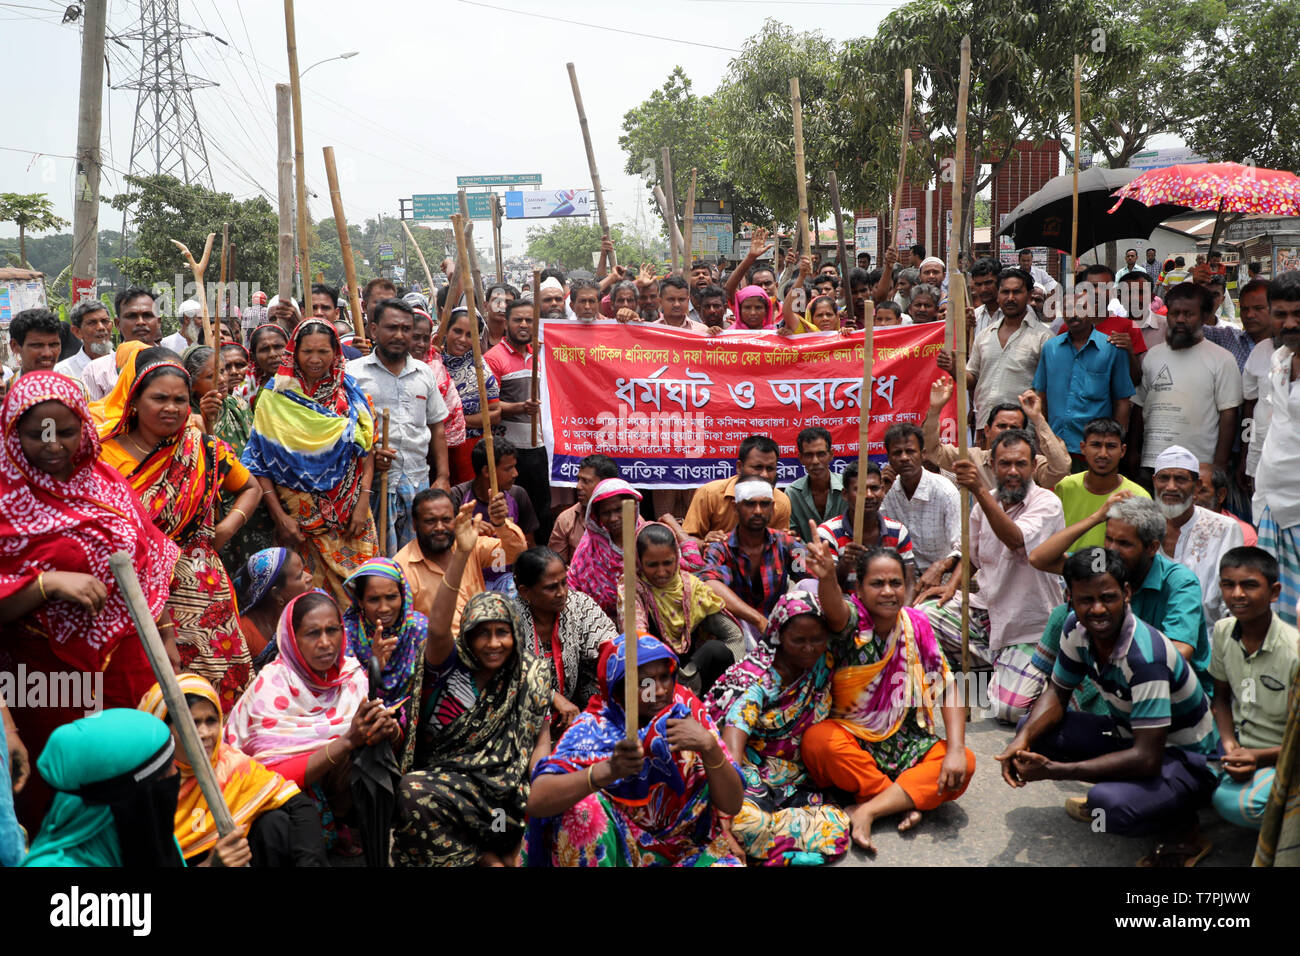 Dhaka, Bangladesh - May 08, 2019: Jute mill workers staged demonstrations stretching from Demra to Jatrabari in Dhaka, Bangladesh on May 08, 2019 to p Stock Photo